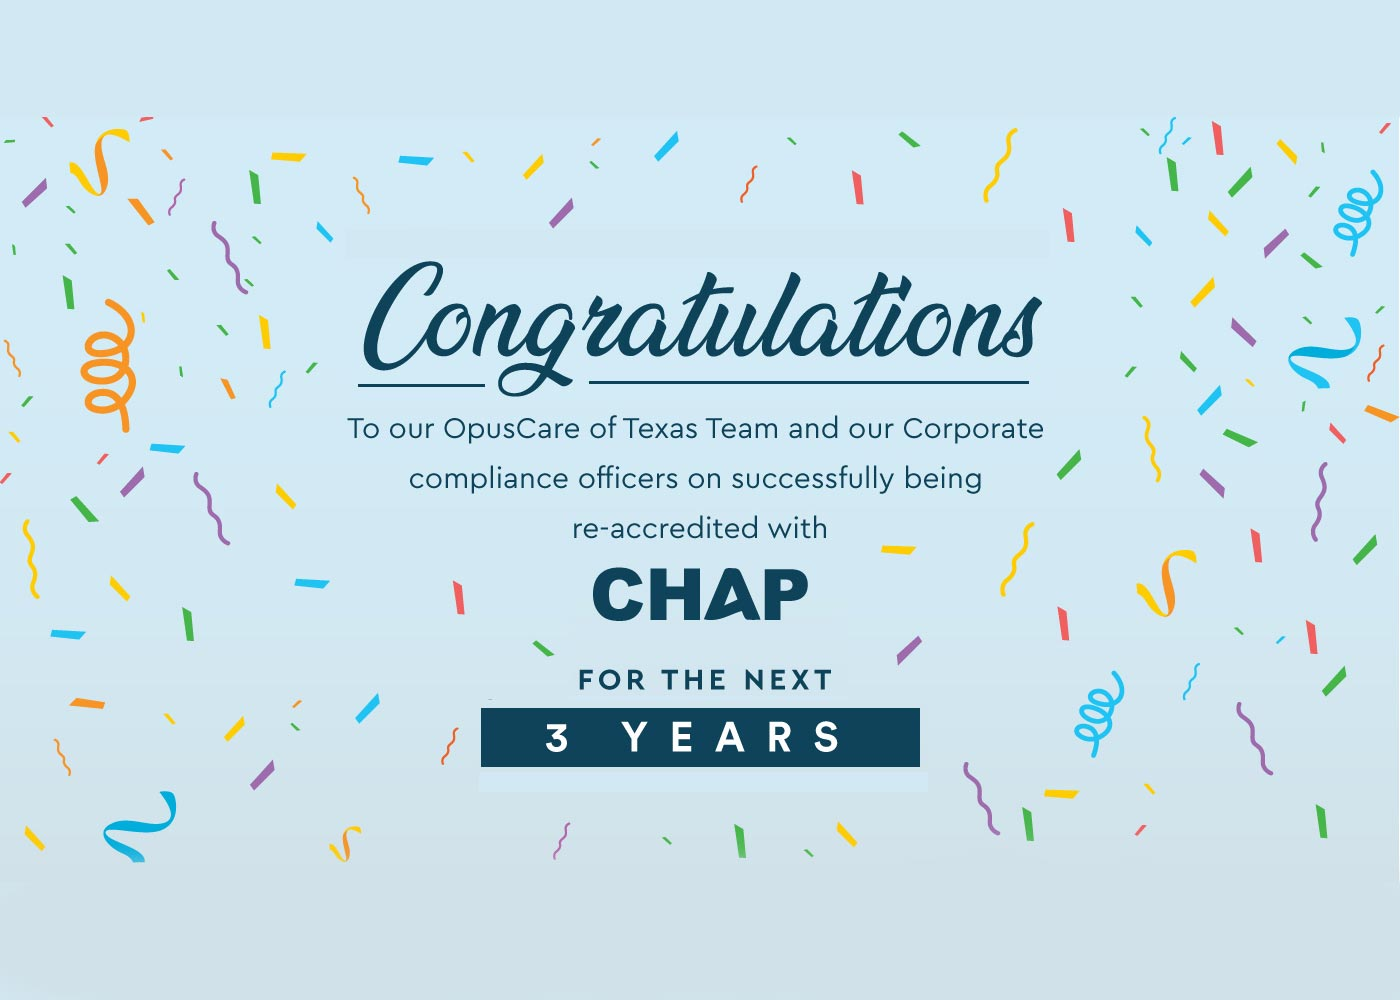 Congratulations to our OpusCare of Texas Team and our Corporate compliane officers on successfully being re-accredited with CHAP for the next 3 years.